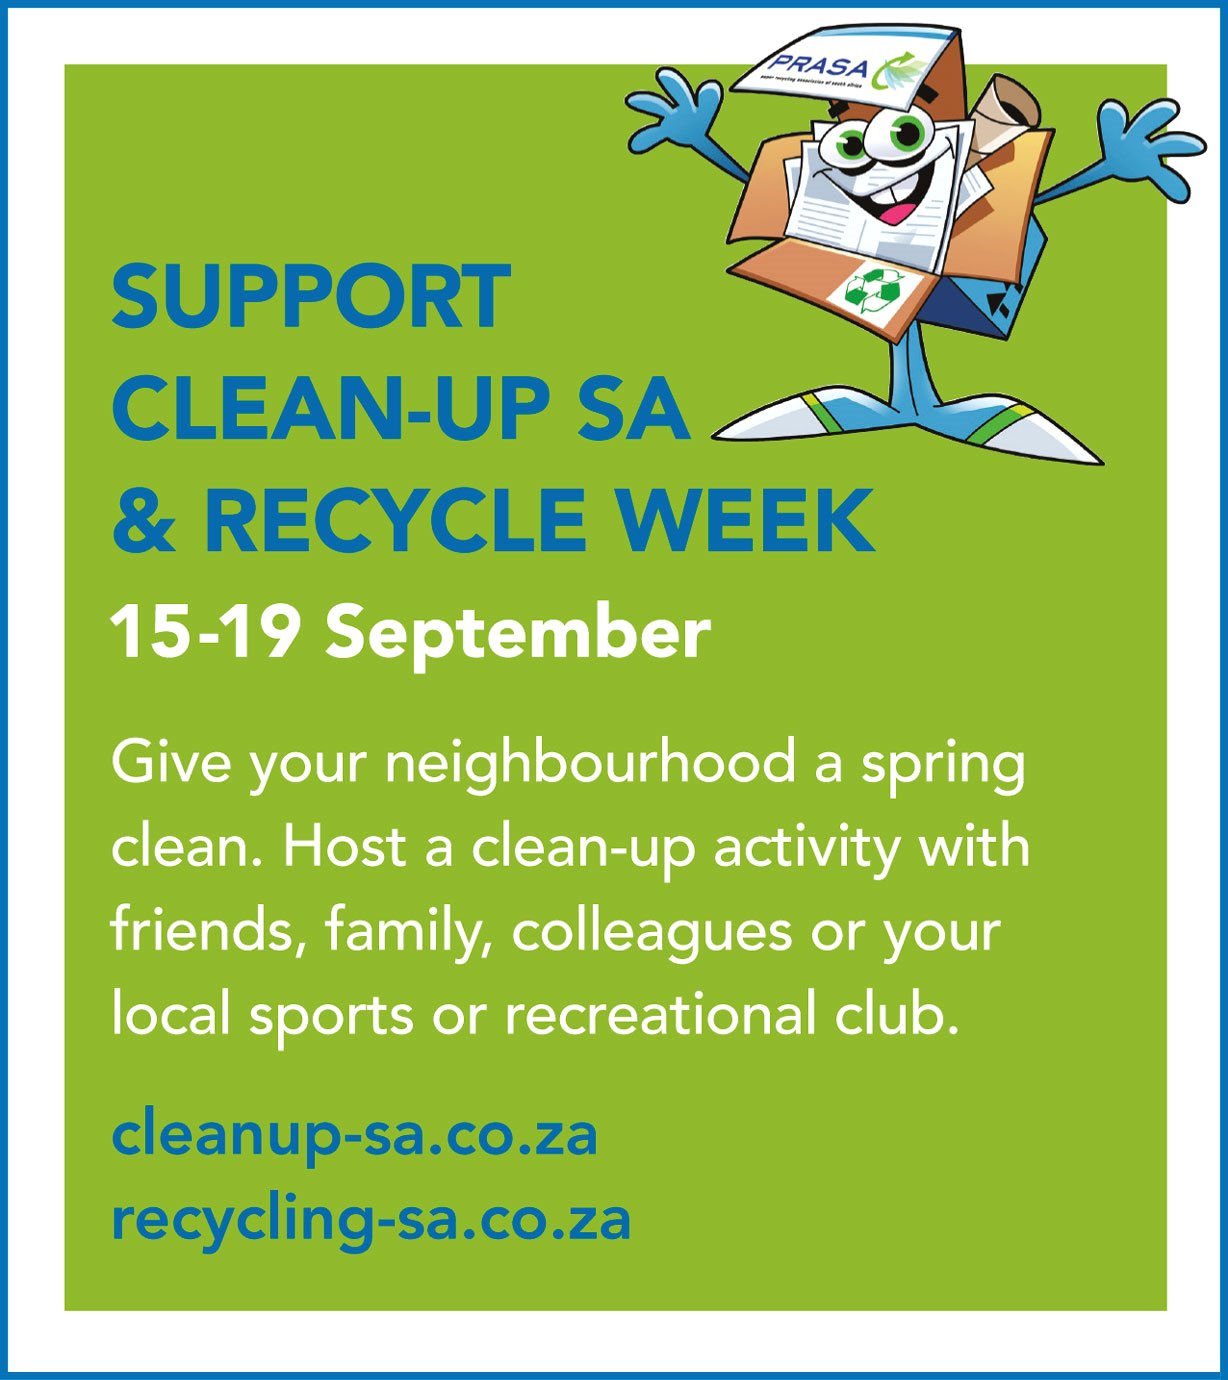 Clean-Up & Recycle Week SA Plastics